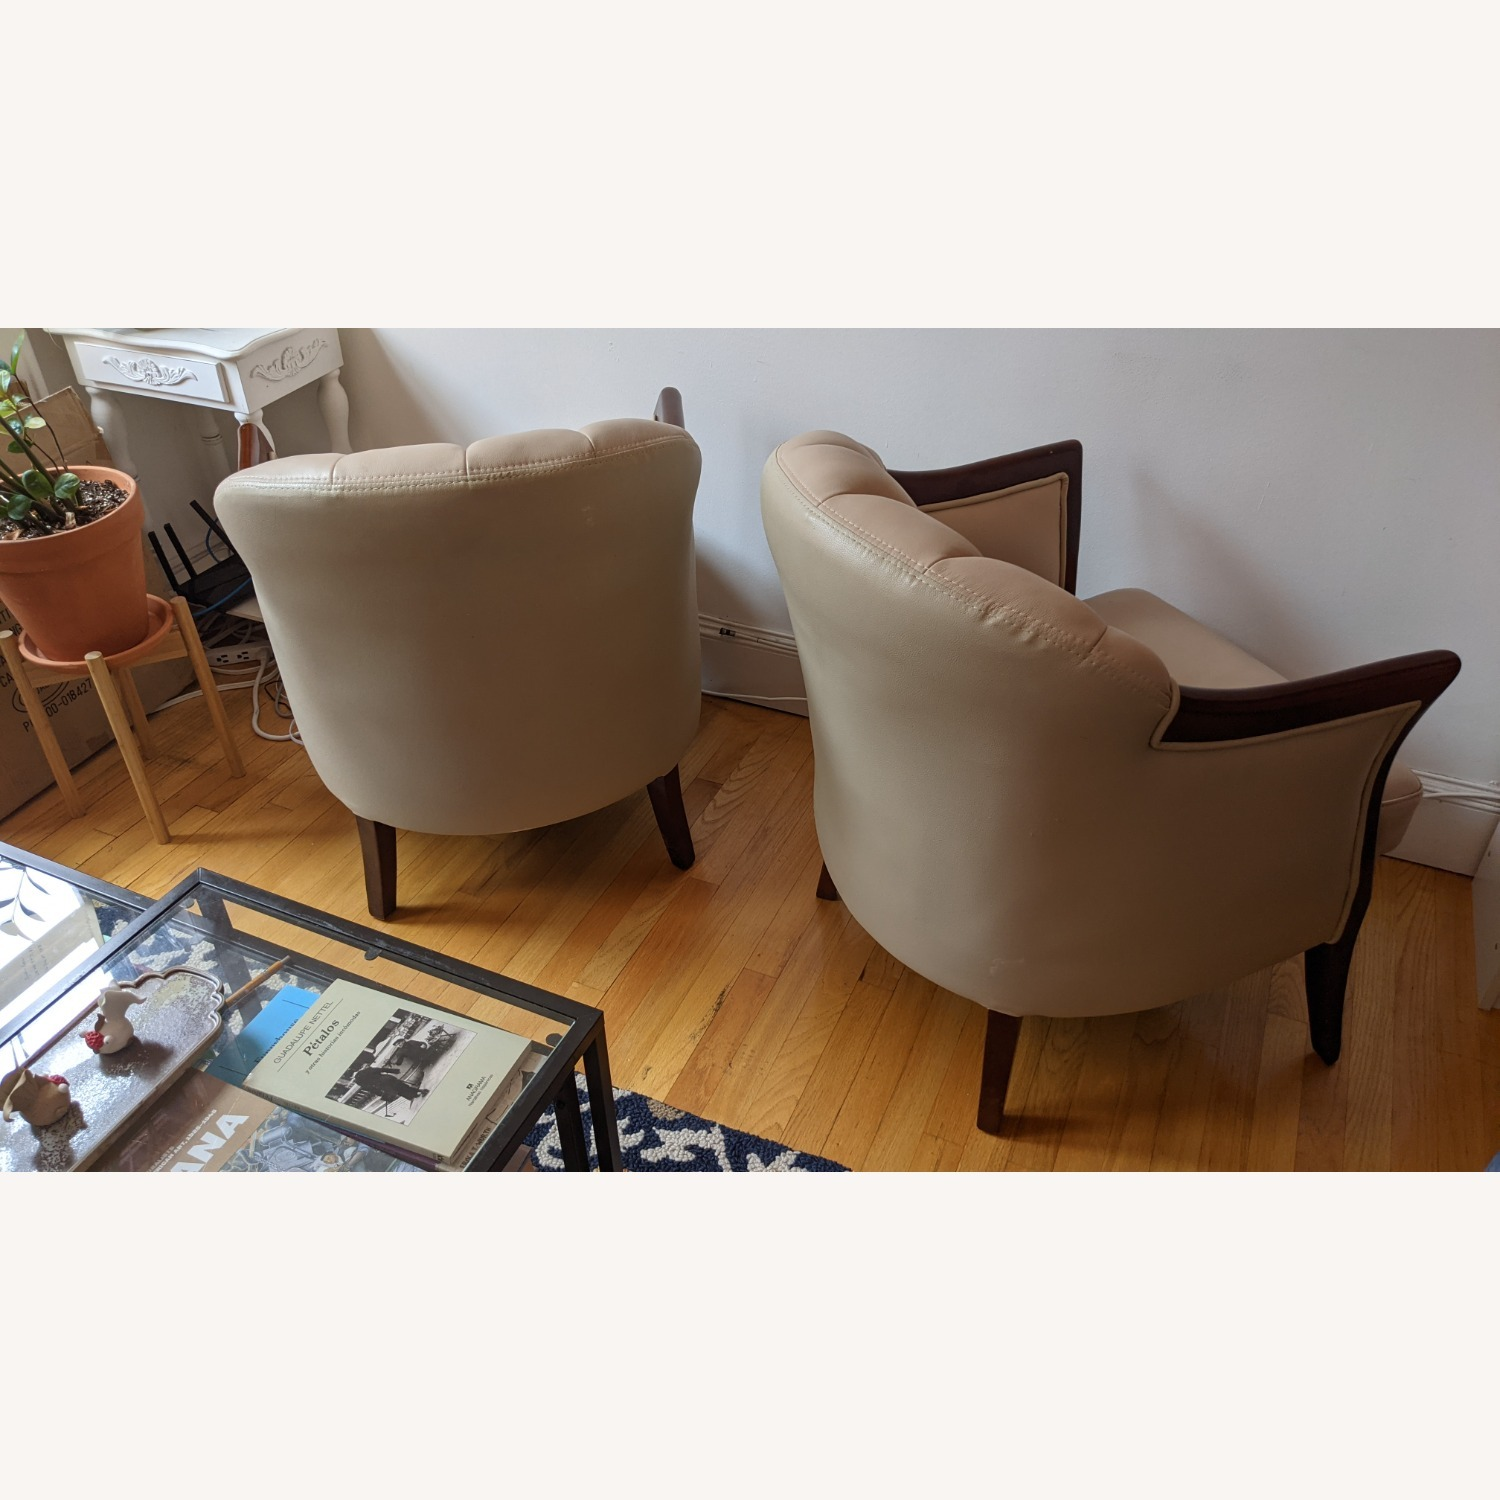 Taupe Tufted Leather Arm Chair Set - image-10